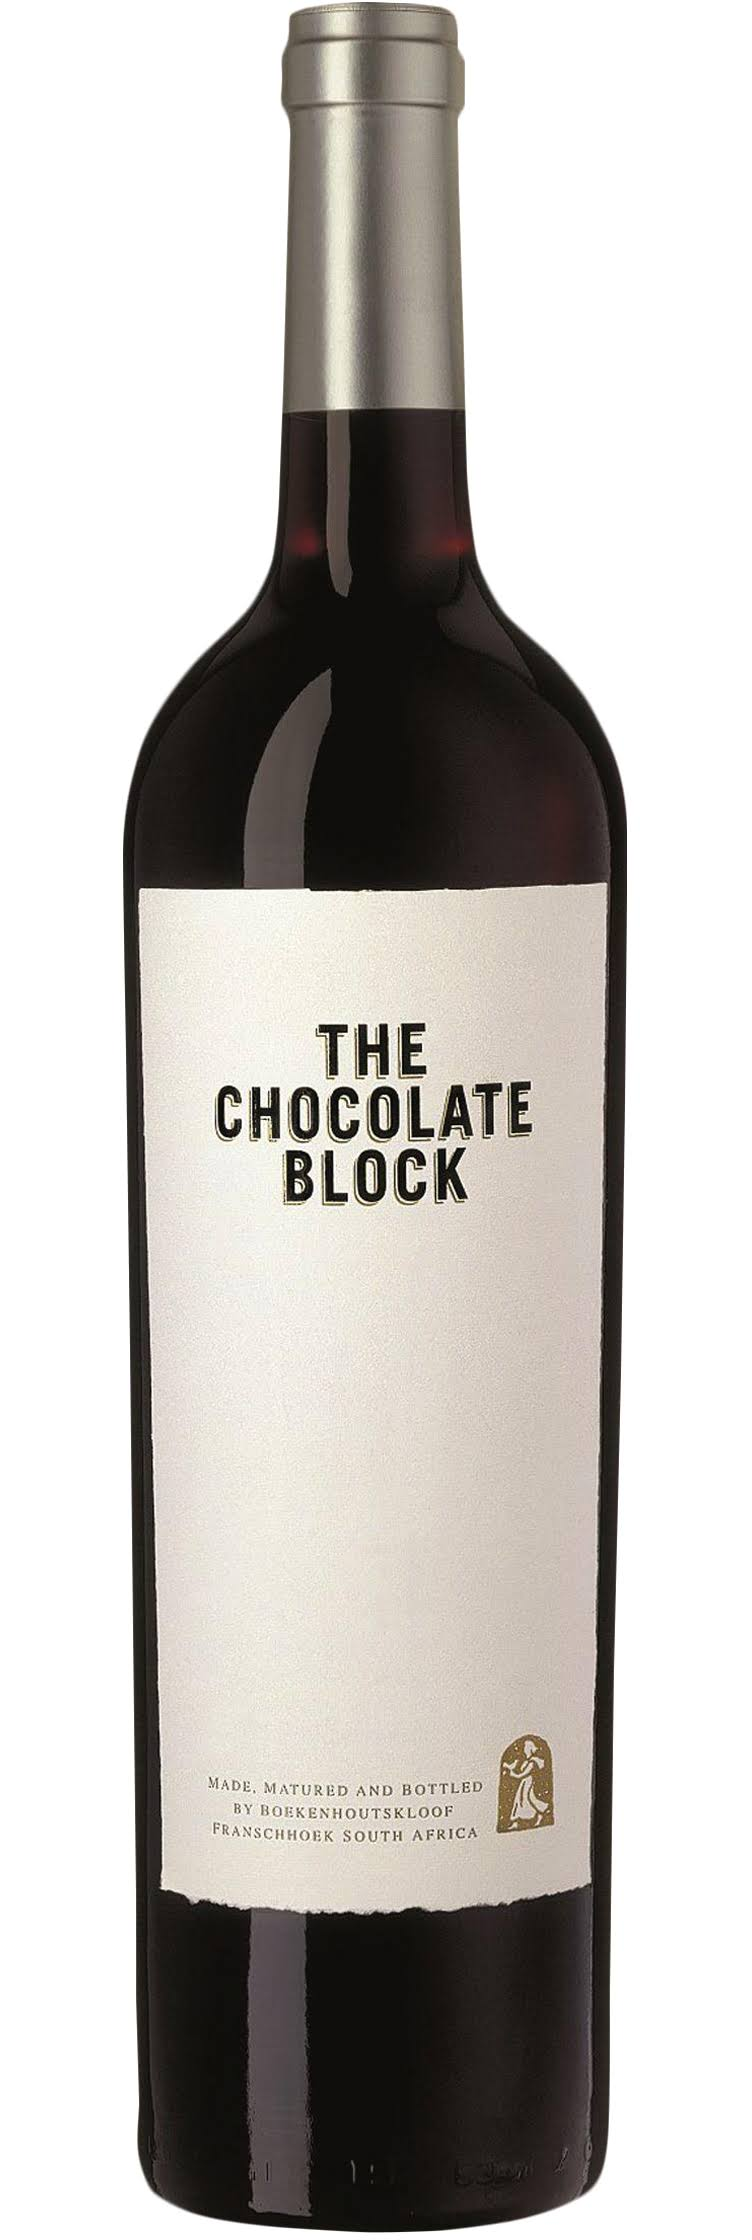 The Chocolate Block - Western Cape, South Africa